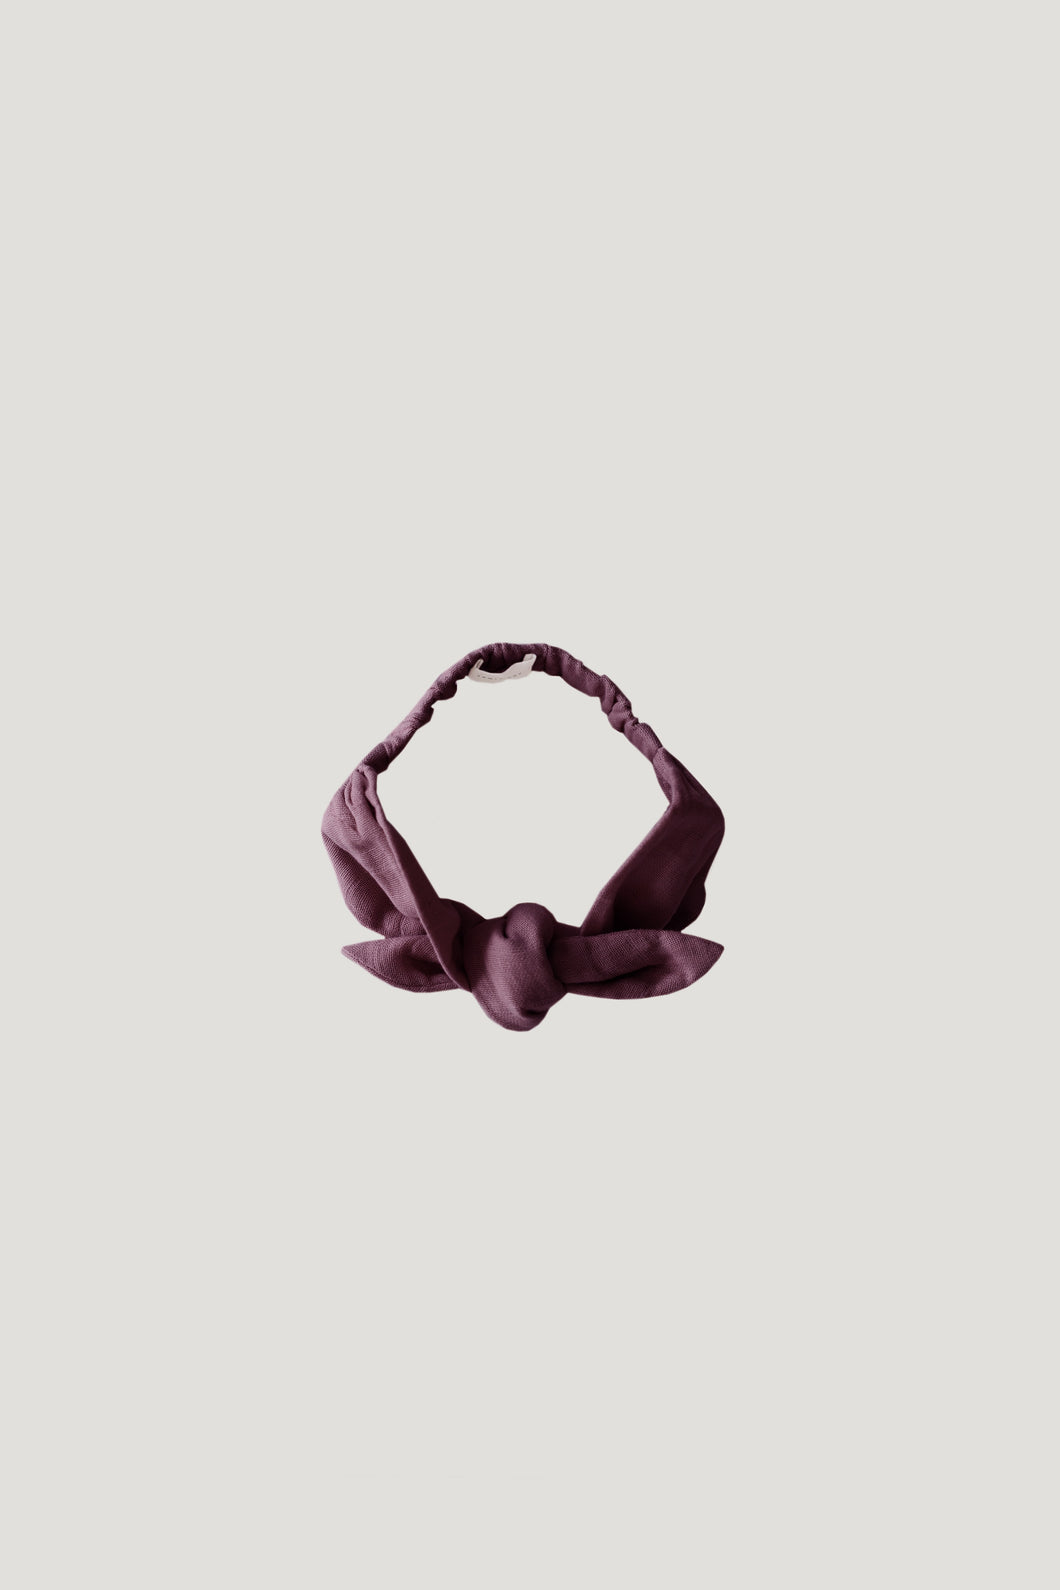 Jamie Kay muslin headband - twilight